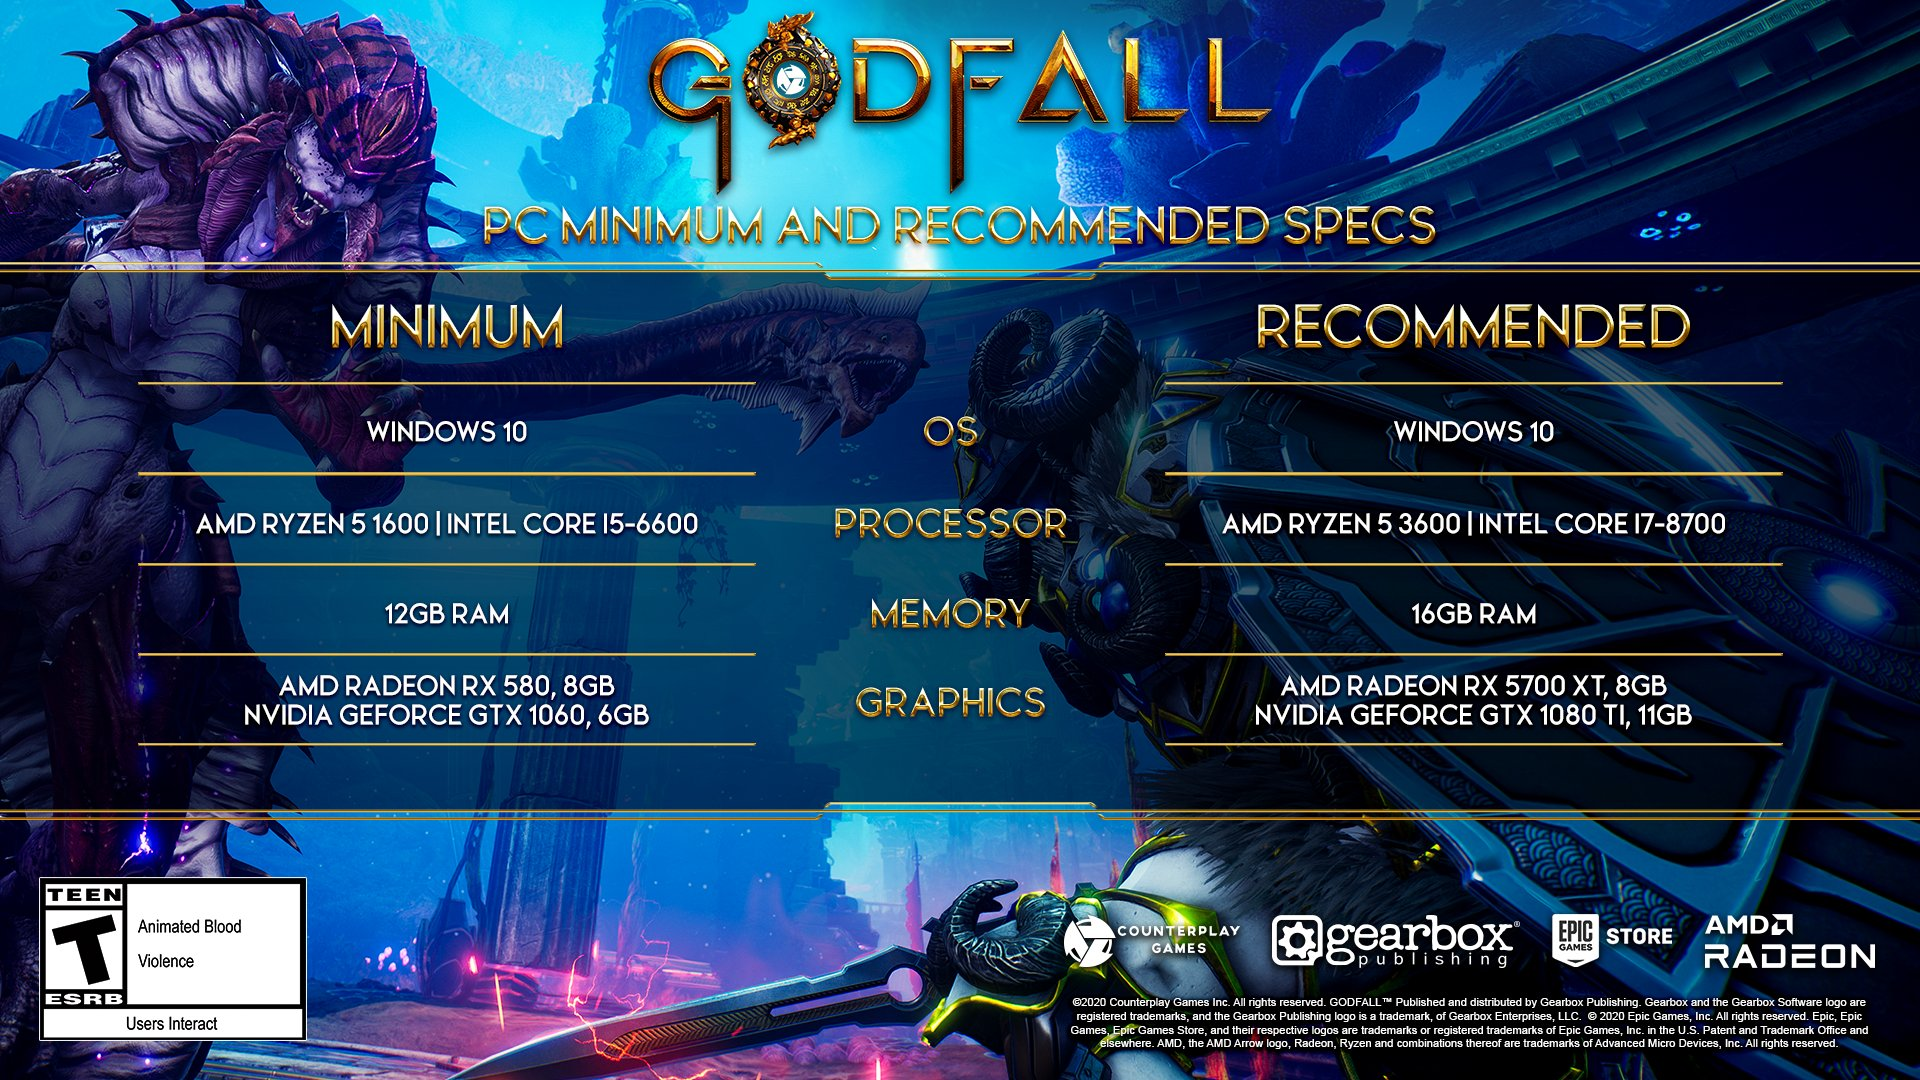 Godfall - System Requirements for Next Generation